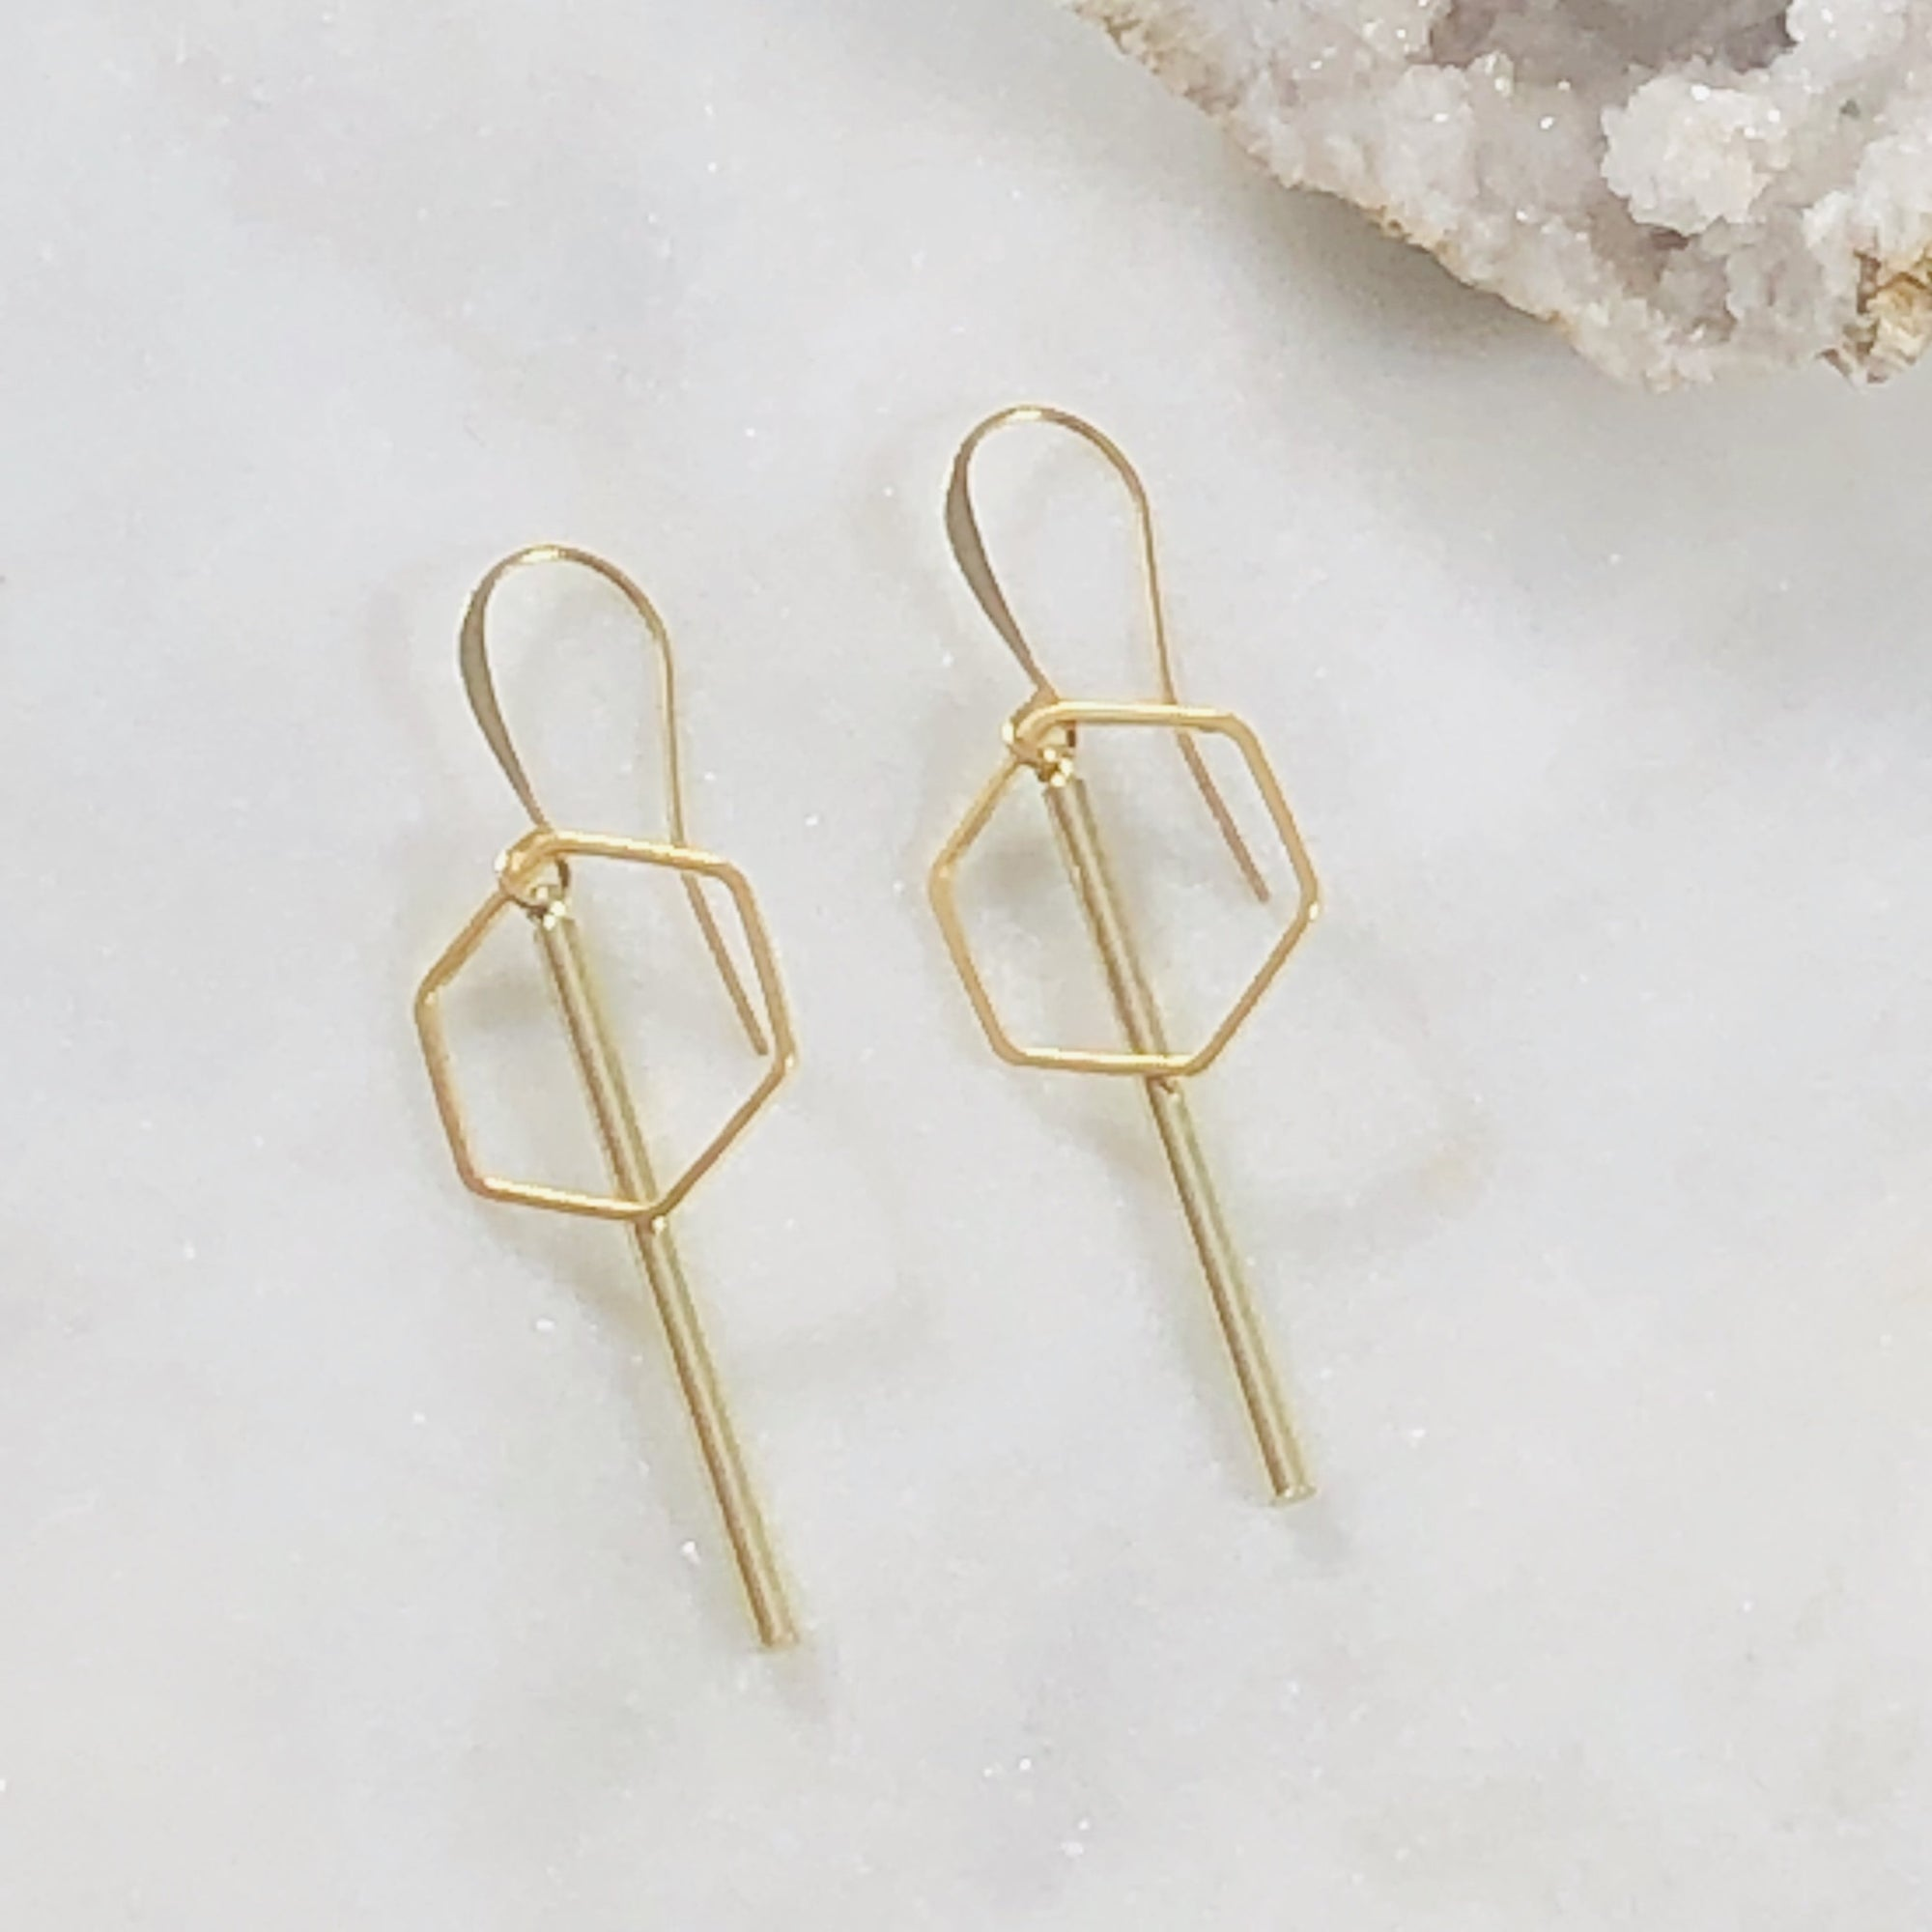 Simple handmade gold plated earrings for modern minimalist style